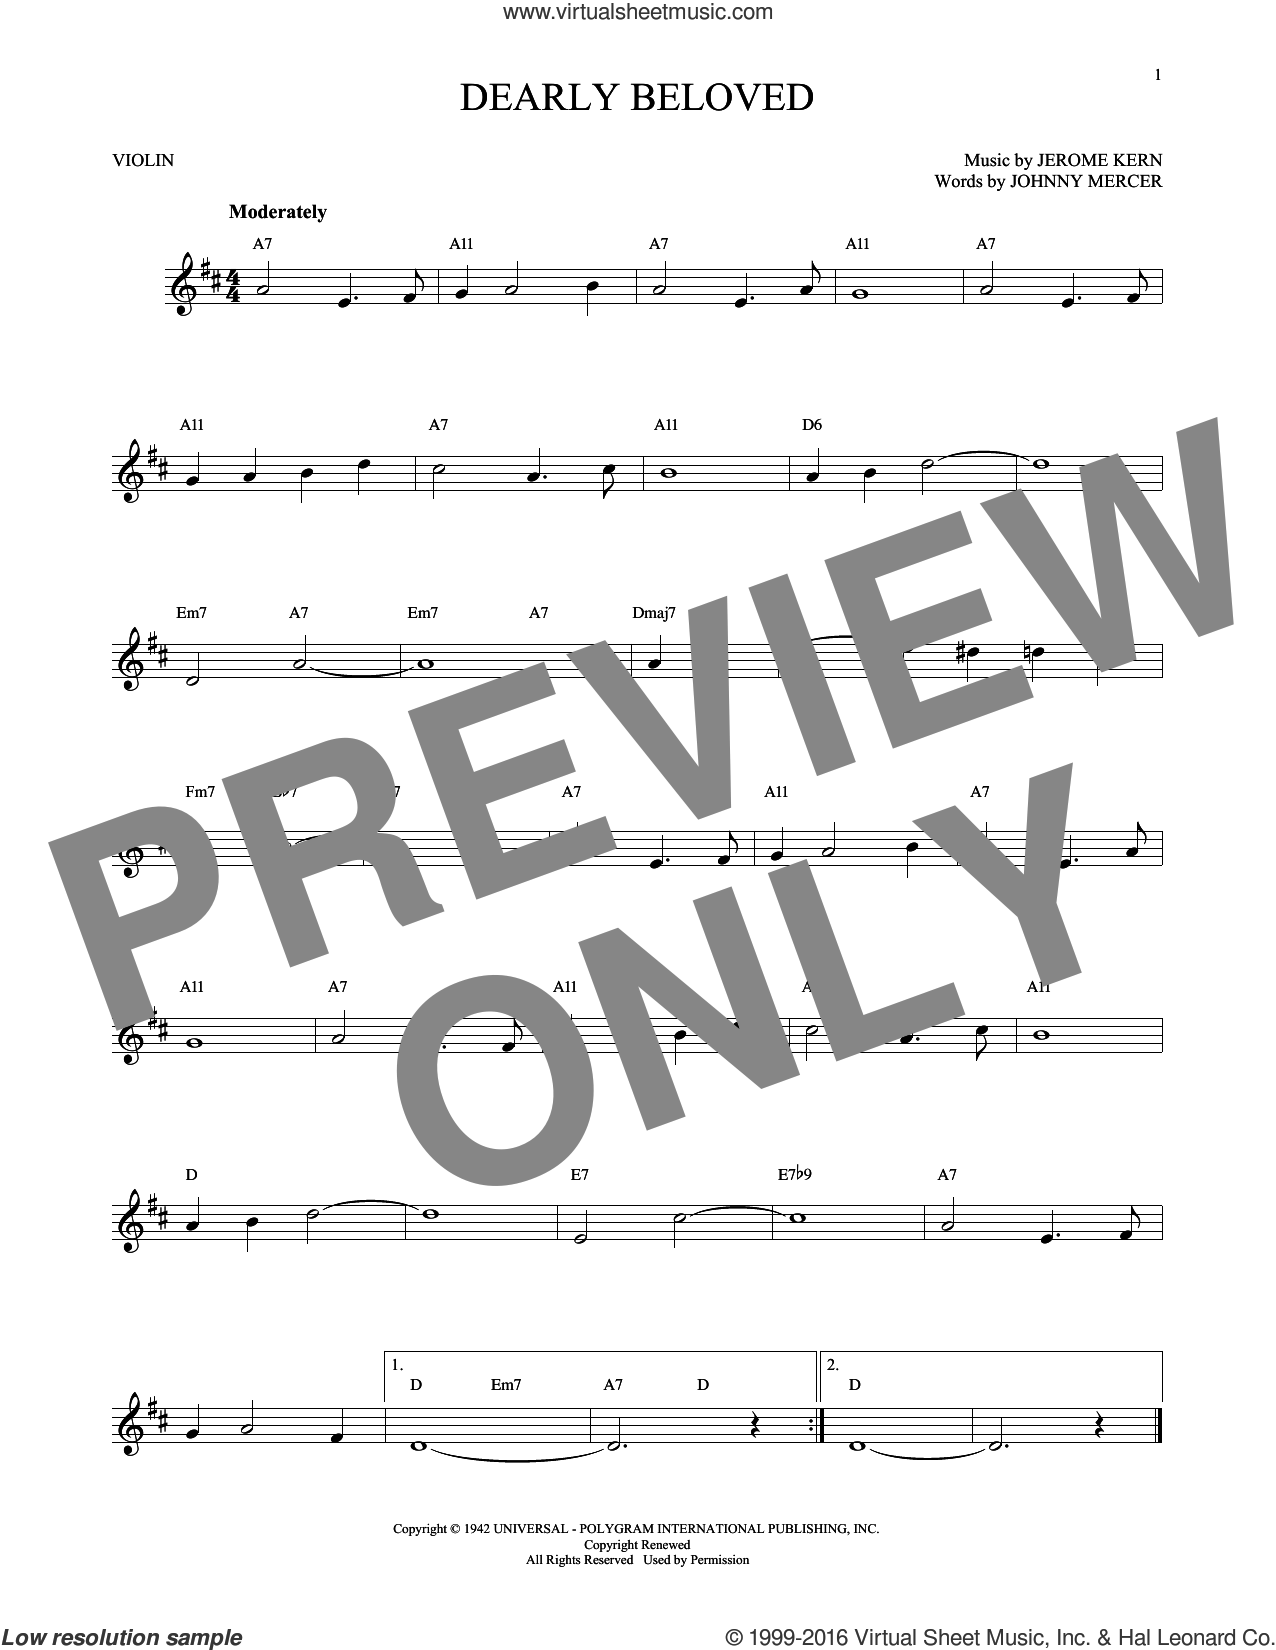 Dearly Beloved sheet music for violin solo by Jerome Kern and Johnny Mercer, intermediate skill level